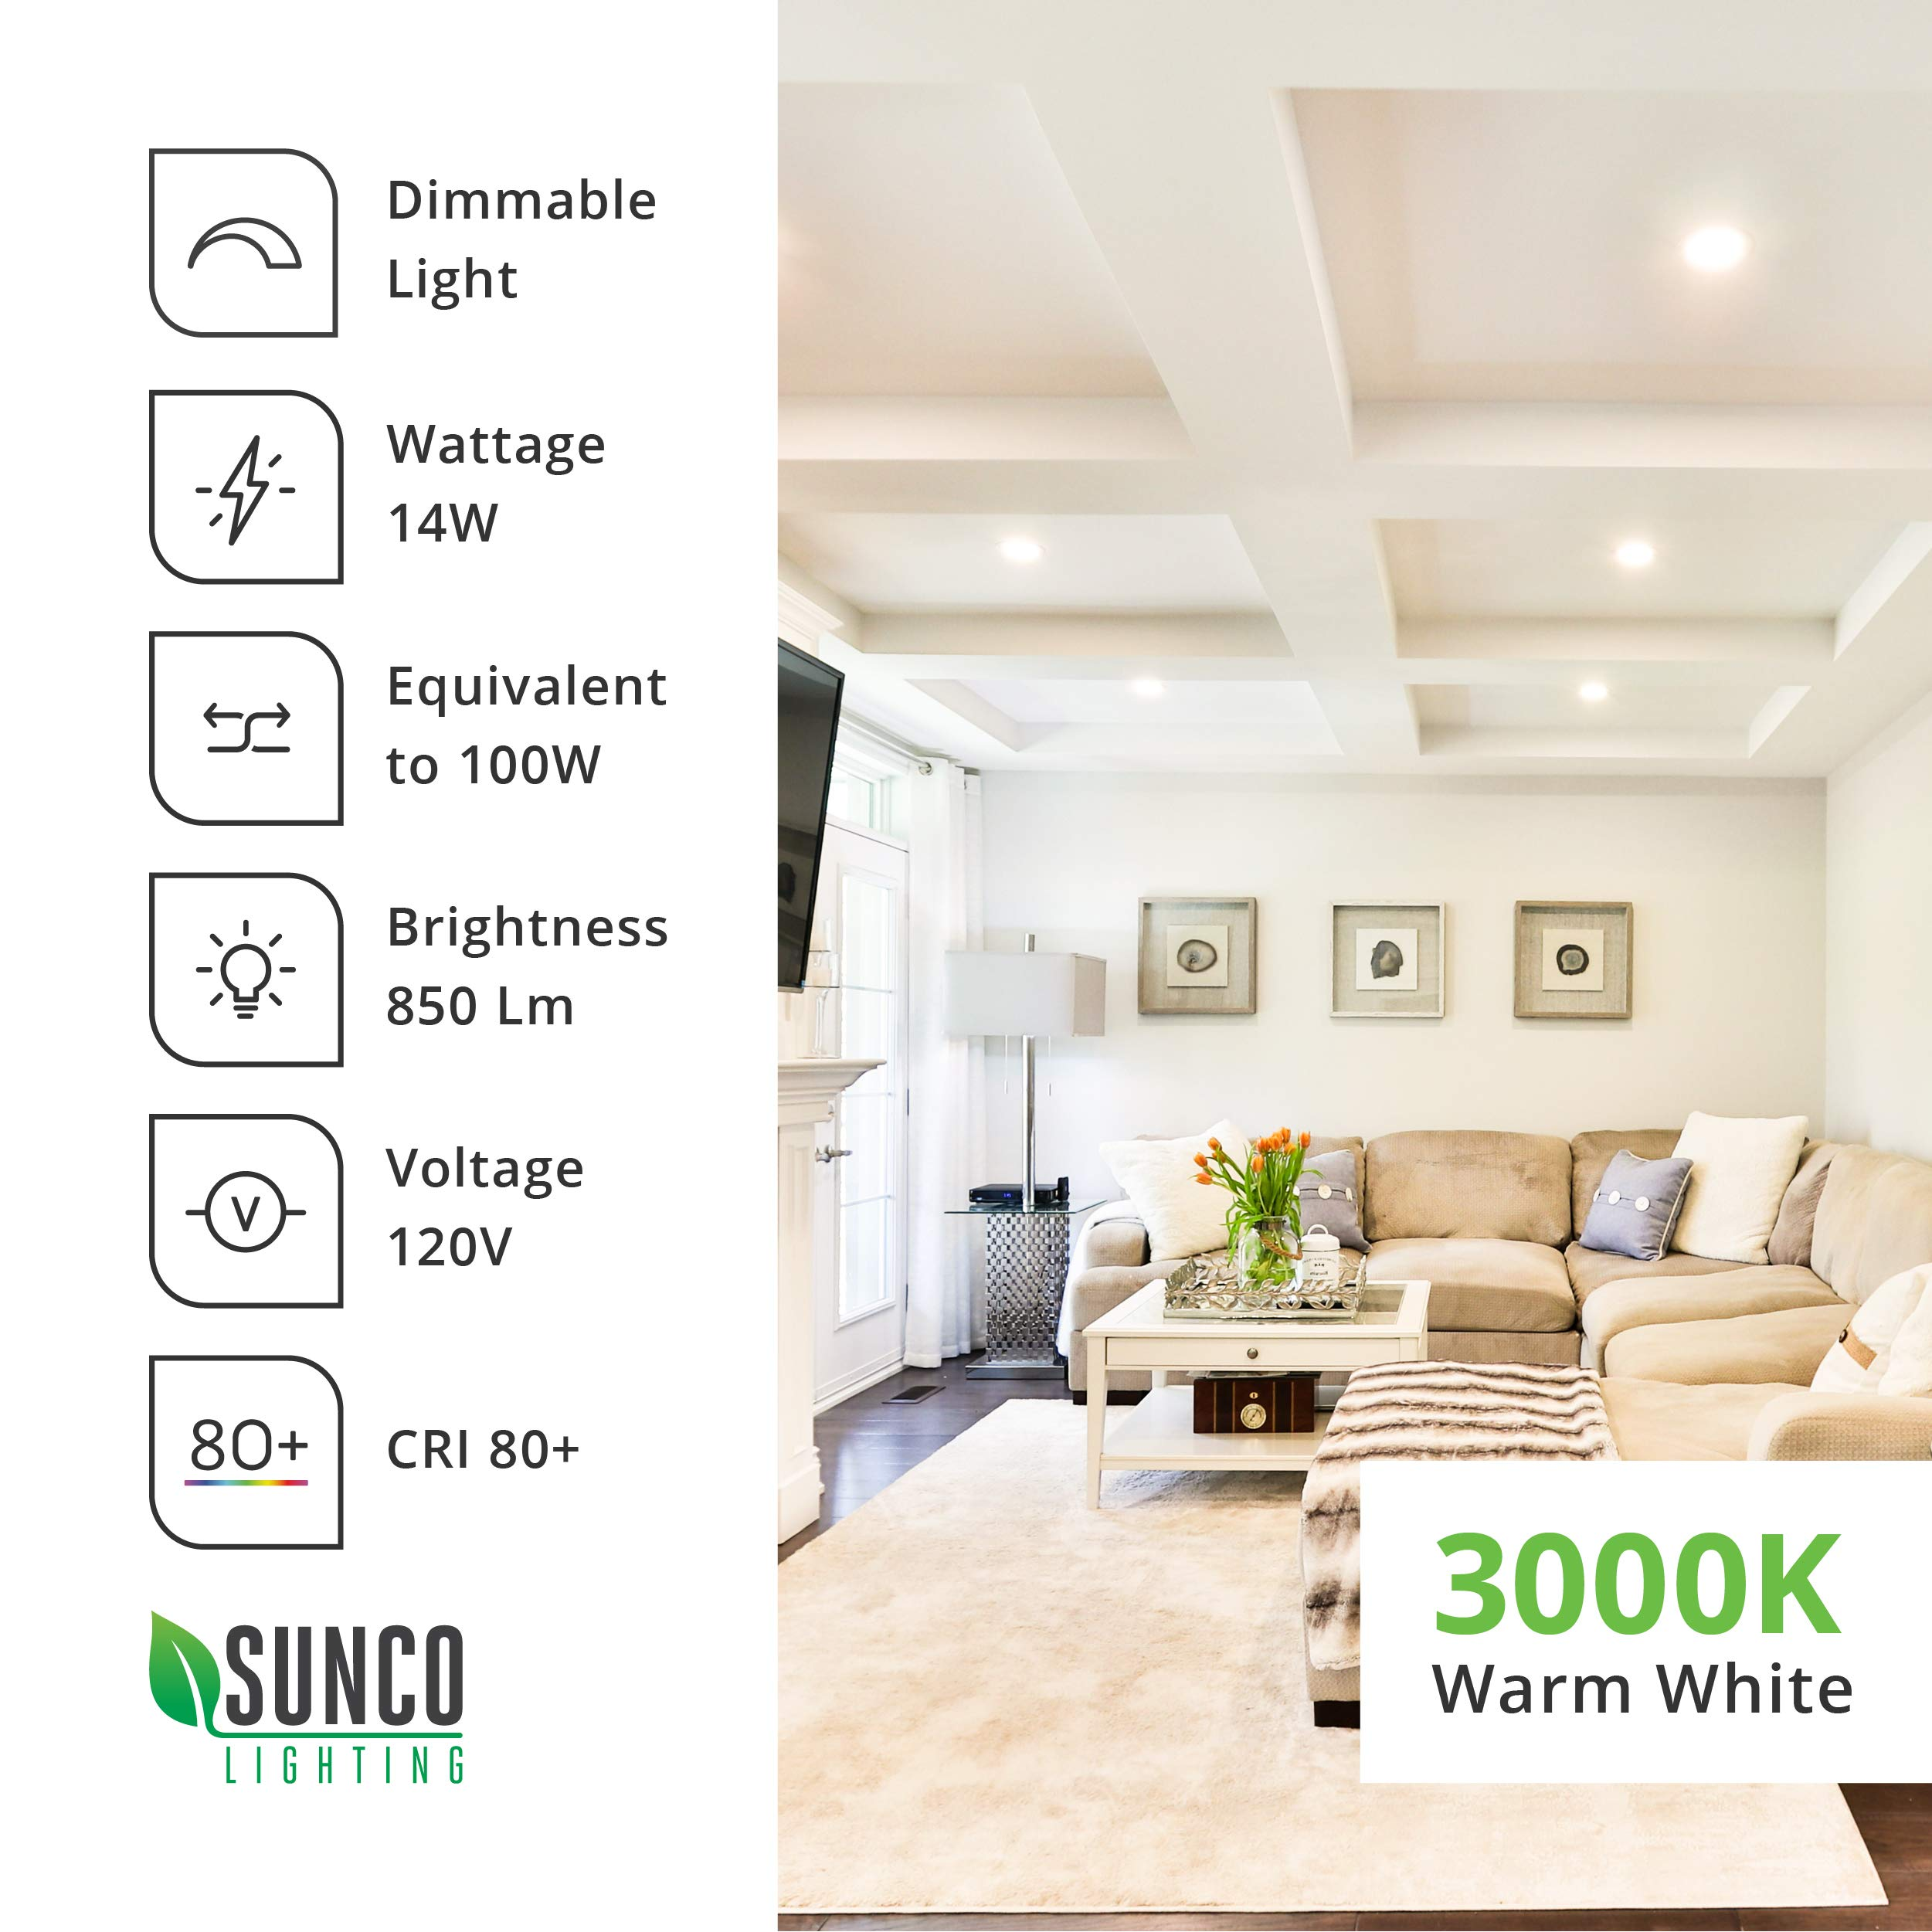 Sunco Lighting 6 Pack 6 Inch Slim LED Downlight with Junction Box, 14W=100W, 850 LM, Dimmable, 3000K Warm White, Recessed Jbox Fixture, Simple Retrofit Installation - ETL & Energy Star by Sunco Lighting (Image #9)